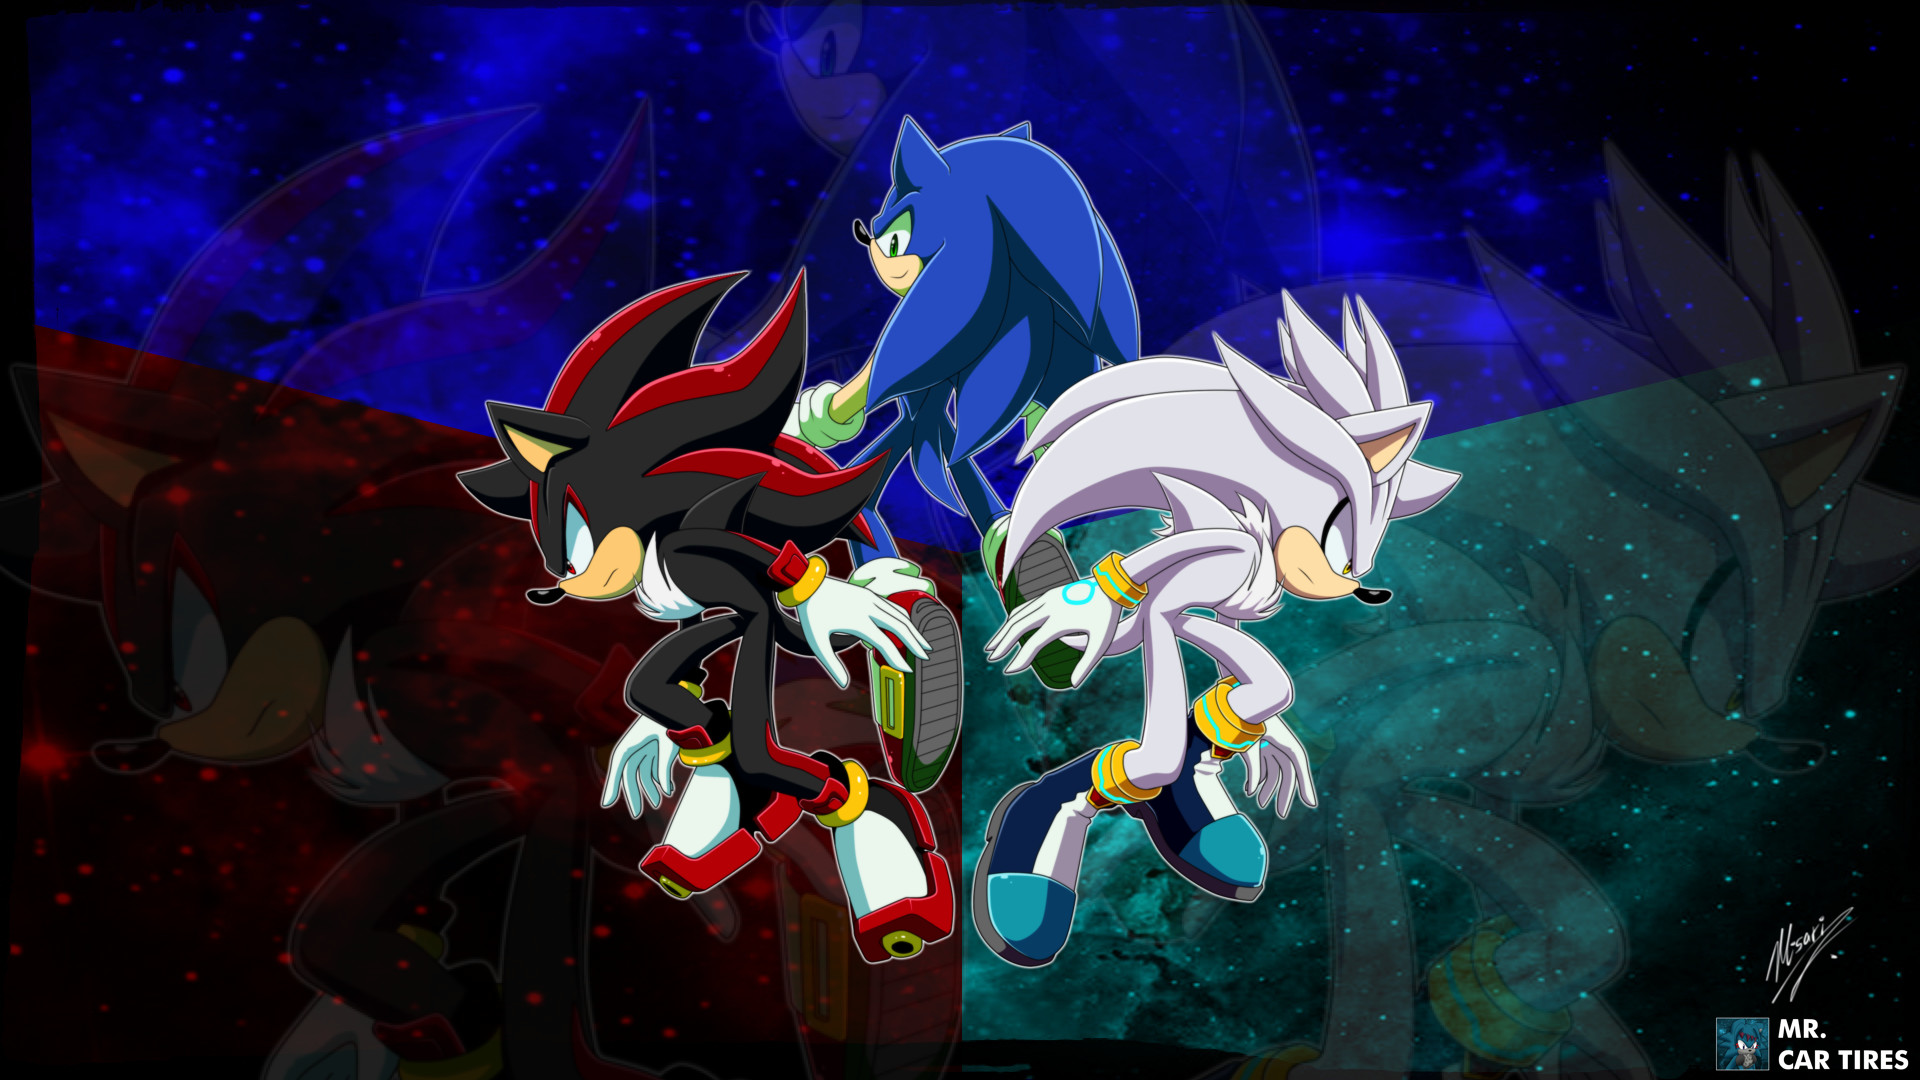 1920x1080 Pin by Anira Azire on Amy, Shadow, Sonic, Silver y todos sus amigos |  Pinterest